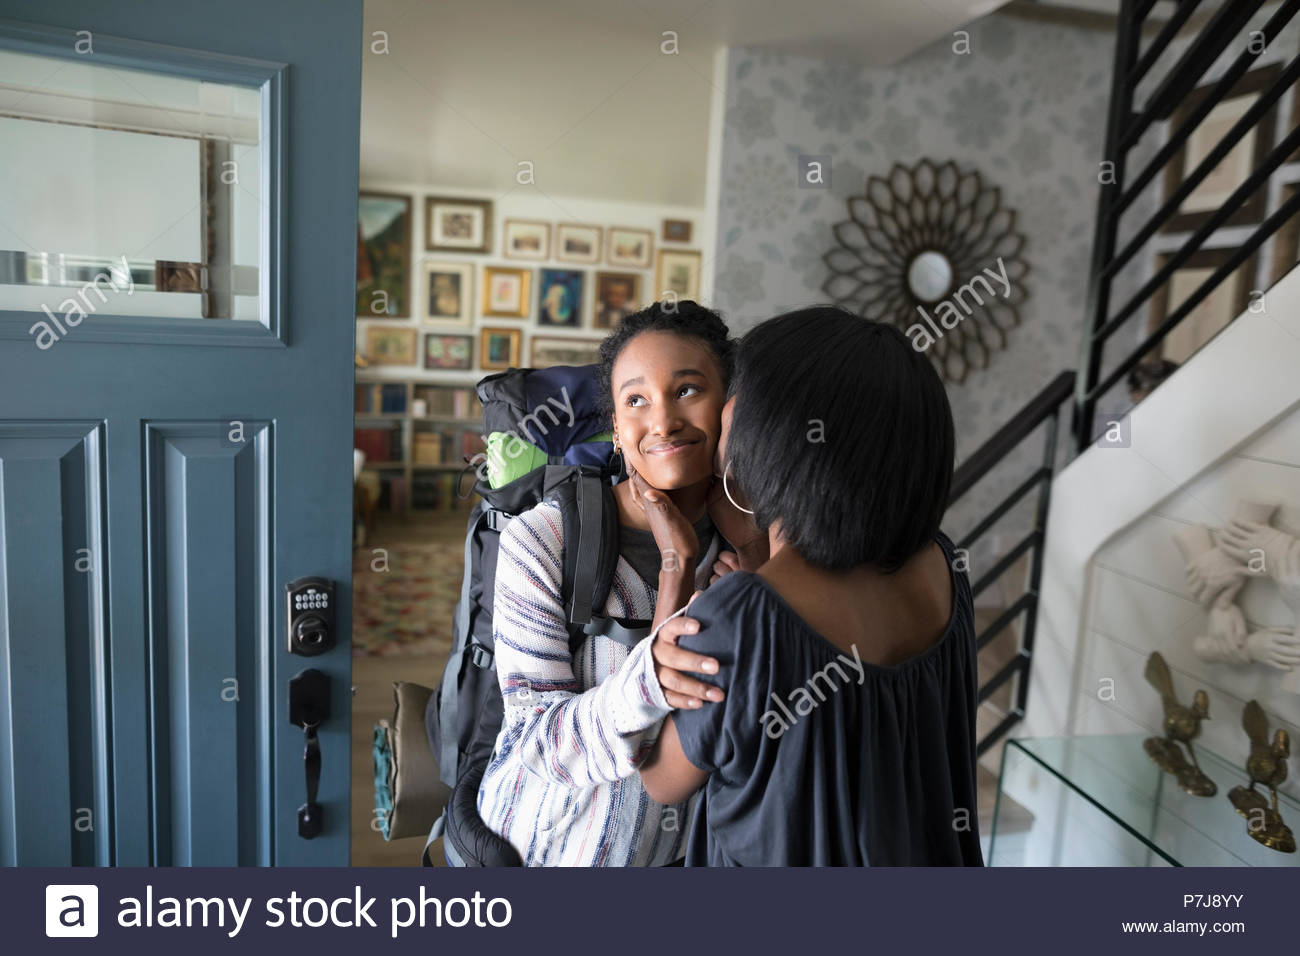 Affectionate mother saying goodbye to teenage daughter leaving for backpacking trip - Stock Image